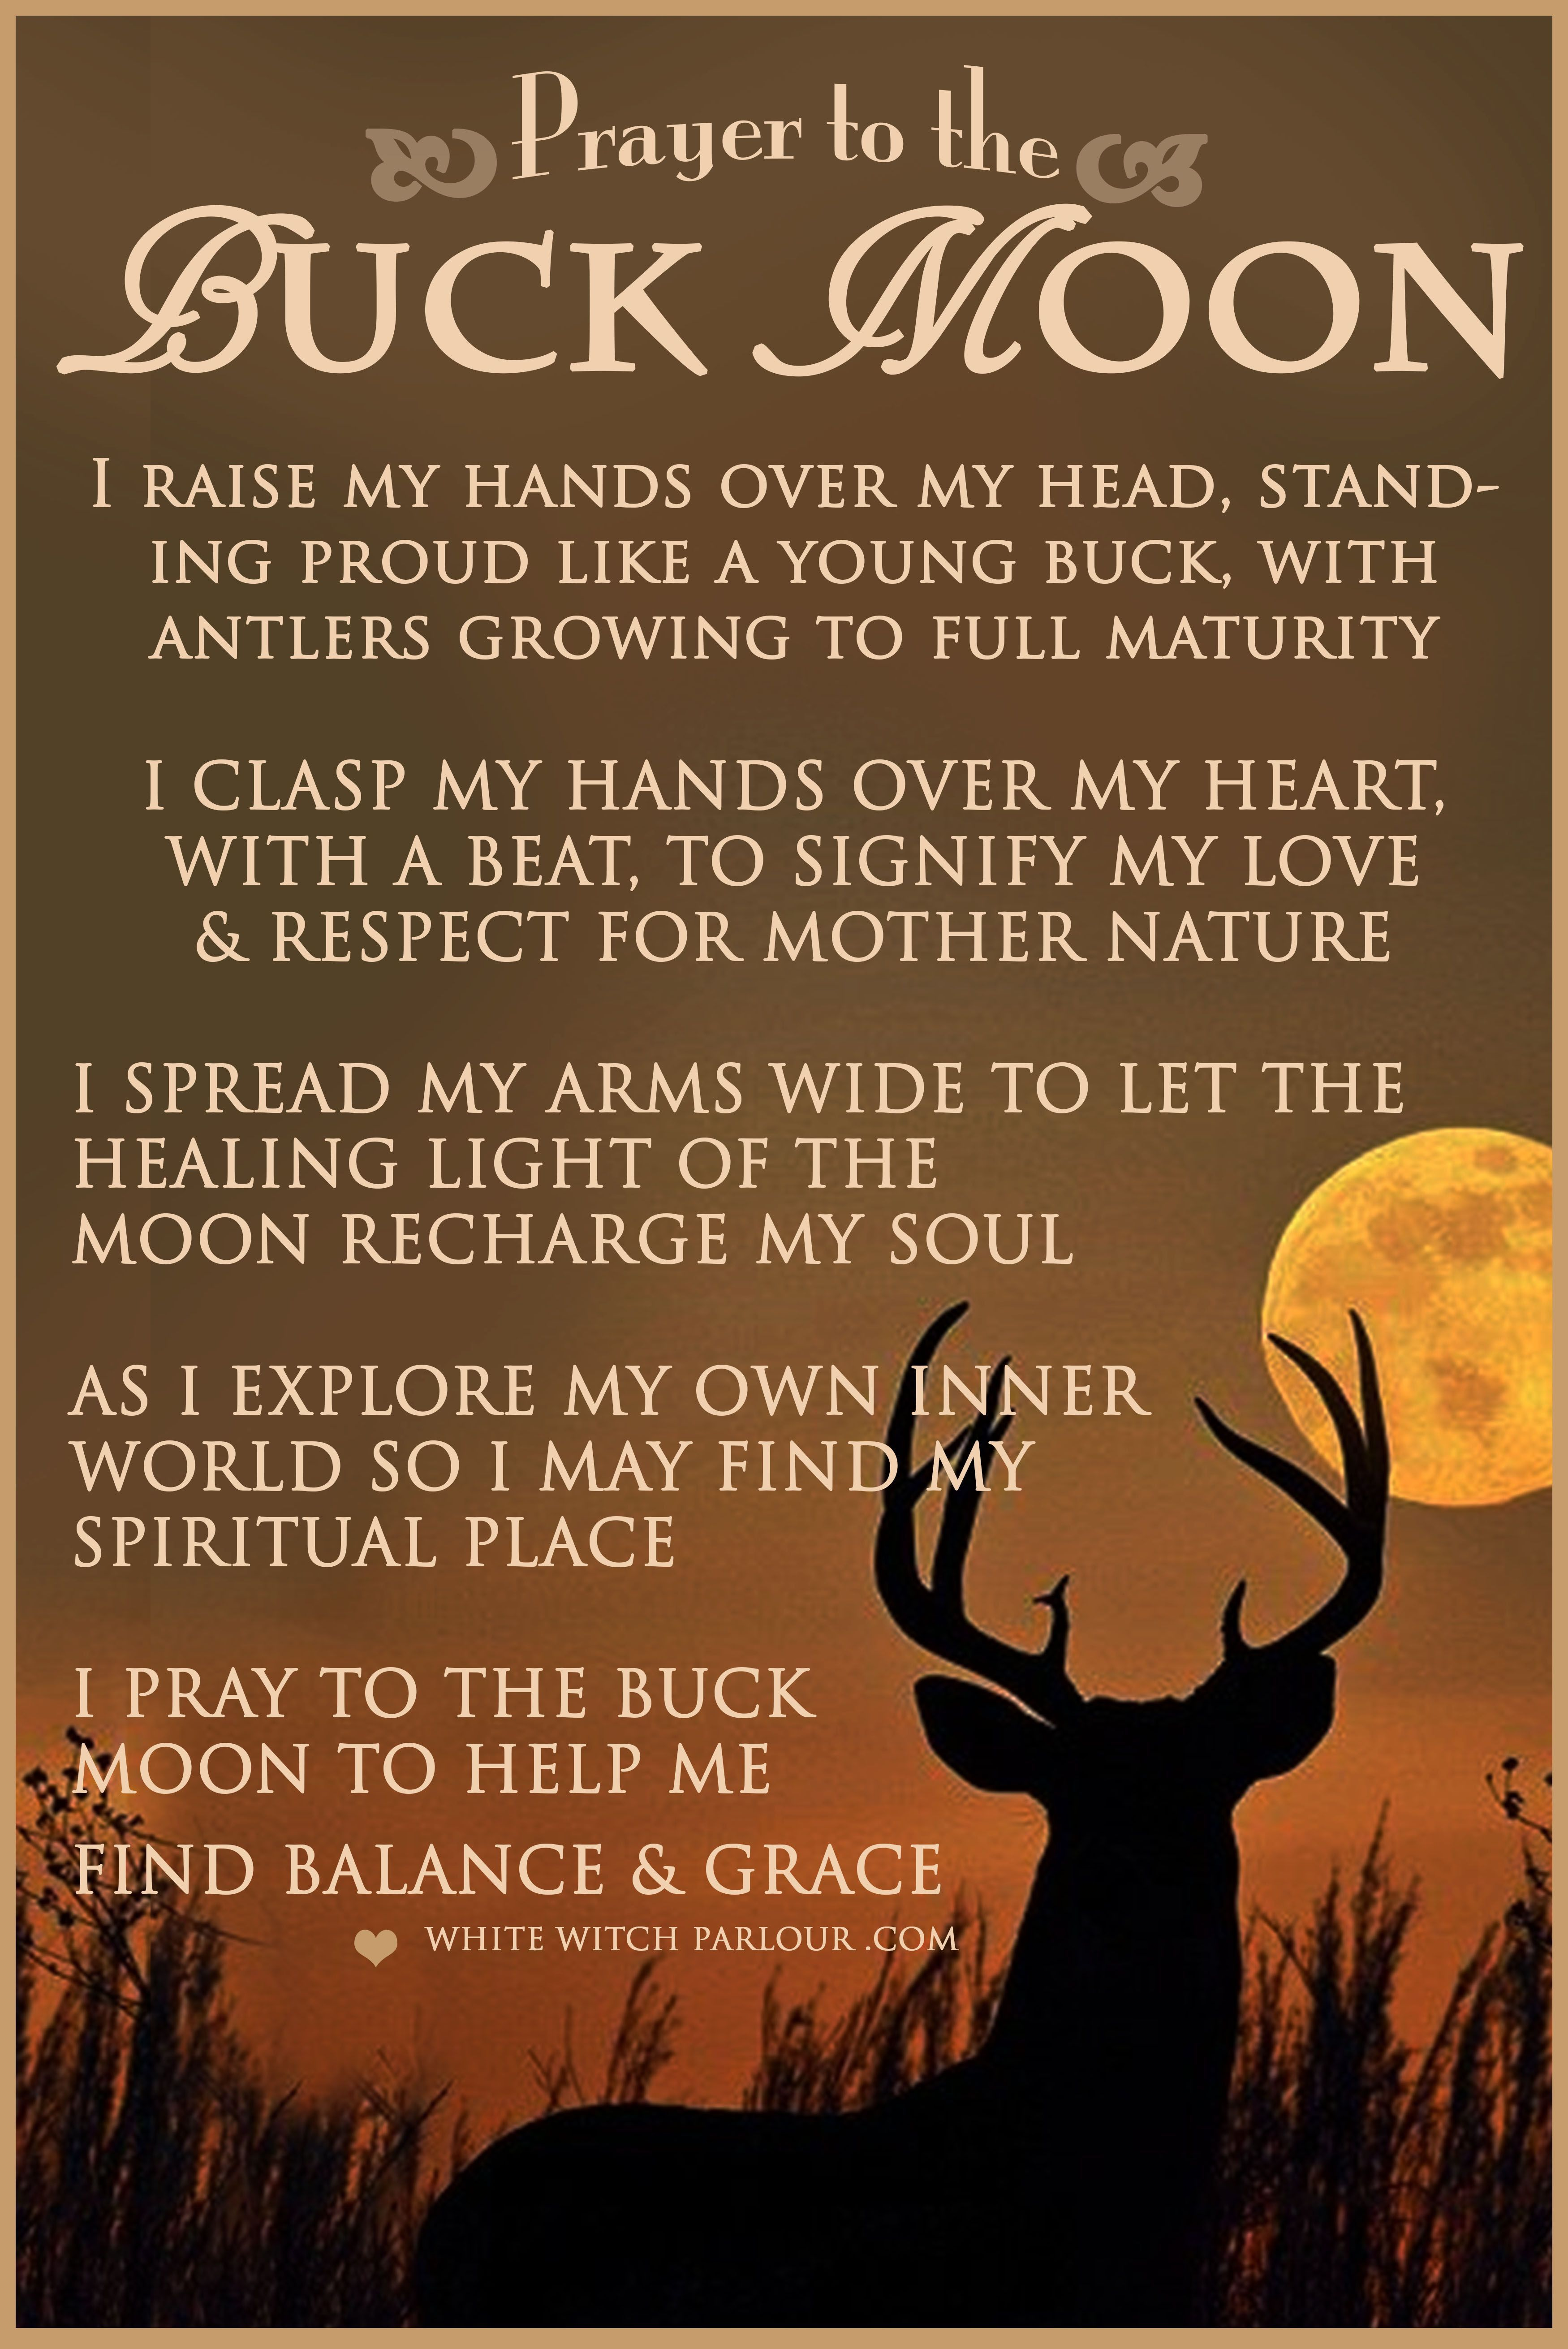 Full Moon Summer Buck Moon July Witch Metaphysical Wicca Spells Release Prayer Blessing Enchanted Spir Full Moon Spells Full Moon Buck Moon Meaning